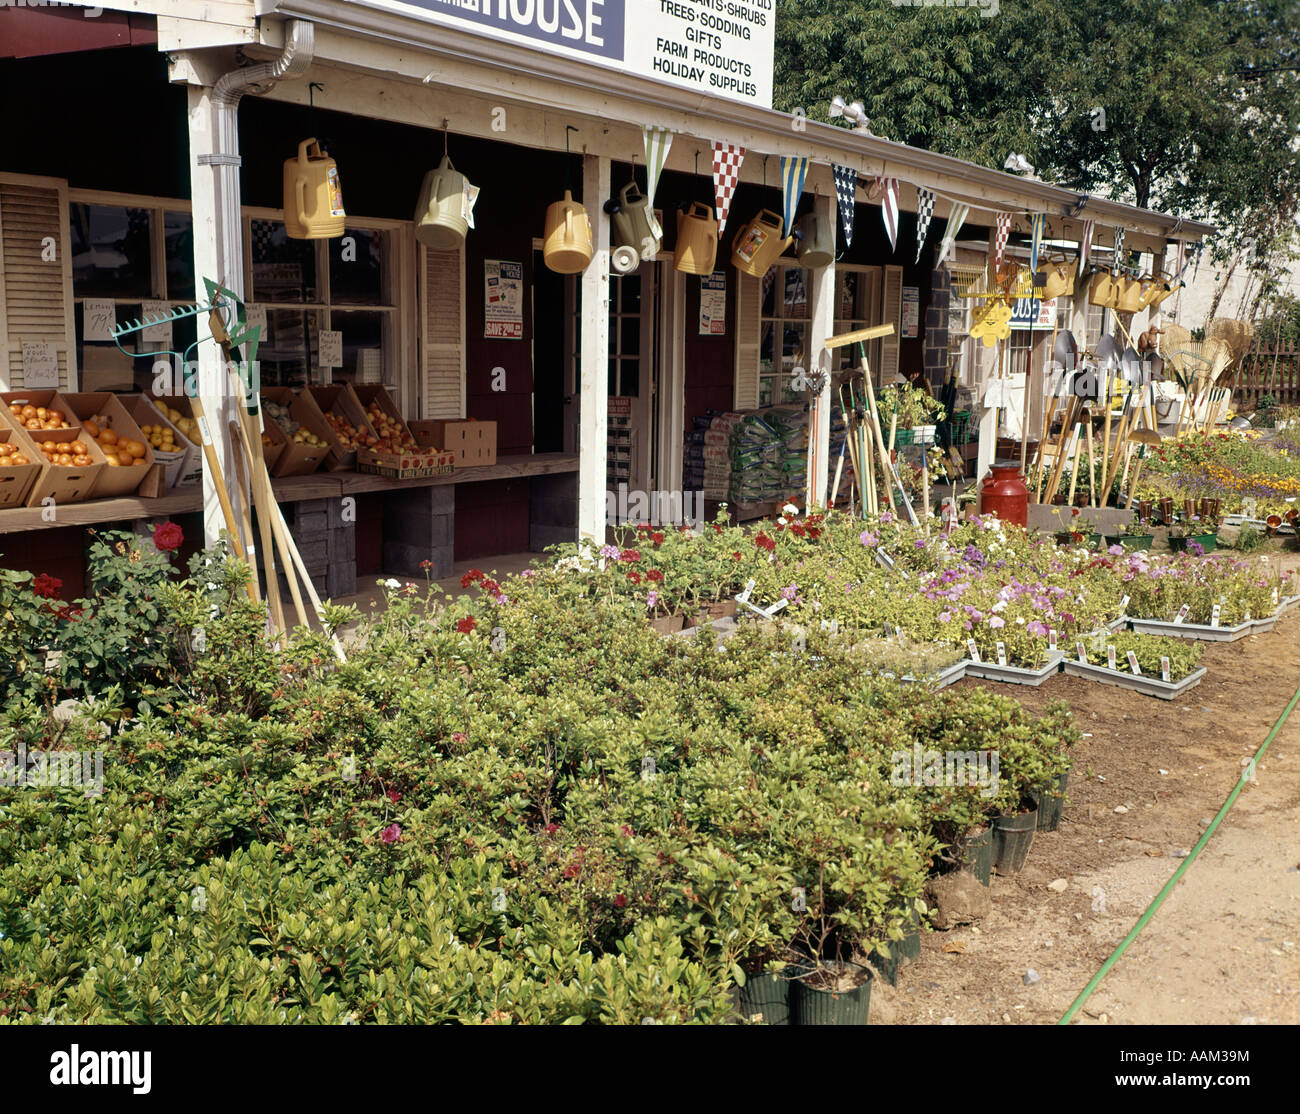 1960s FLOWERS GARDEN STORE COUNTRY MARKET - Stock Image